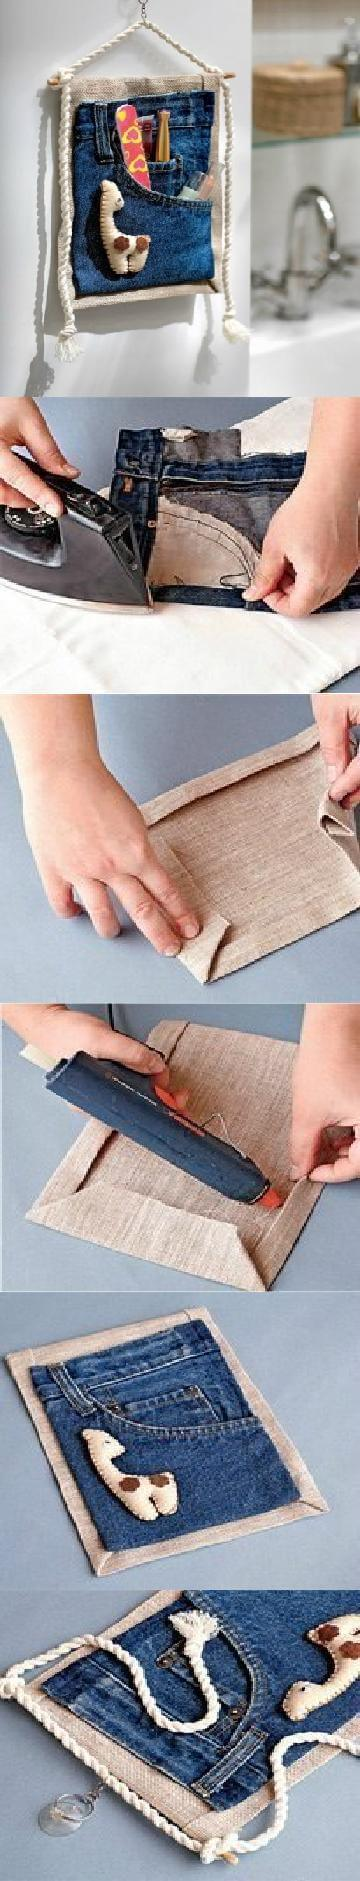 diy-old-jeans-organizer DIY Clever Projects from OLD DENIM JEANS - Step by step tutorial